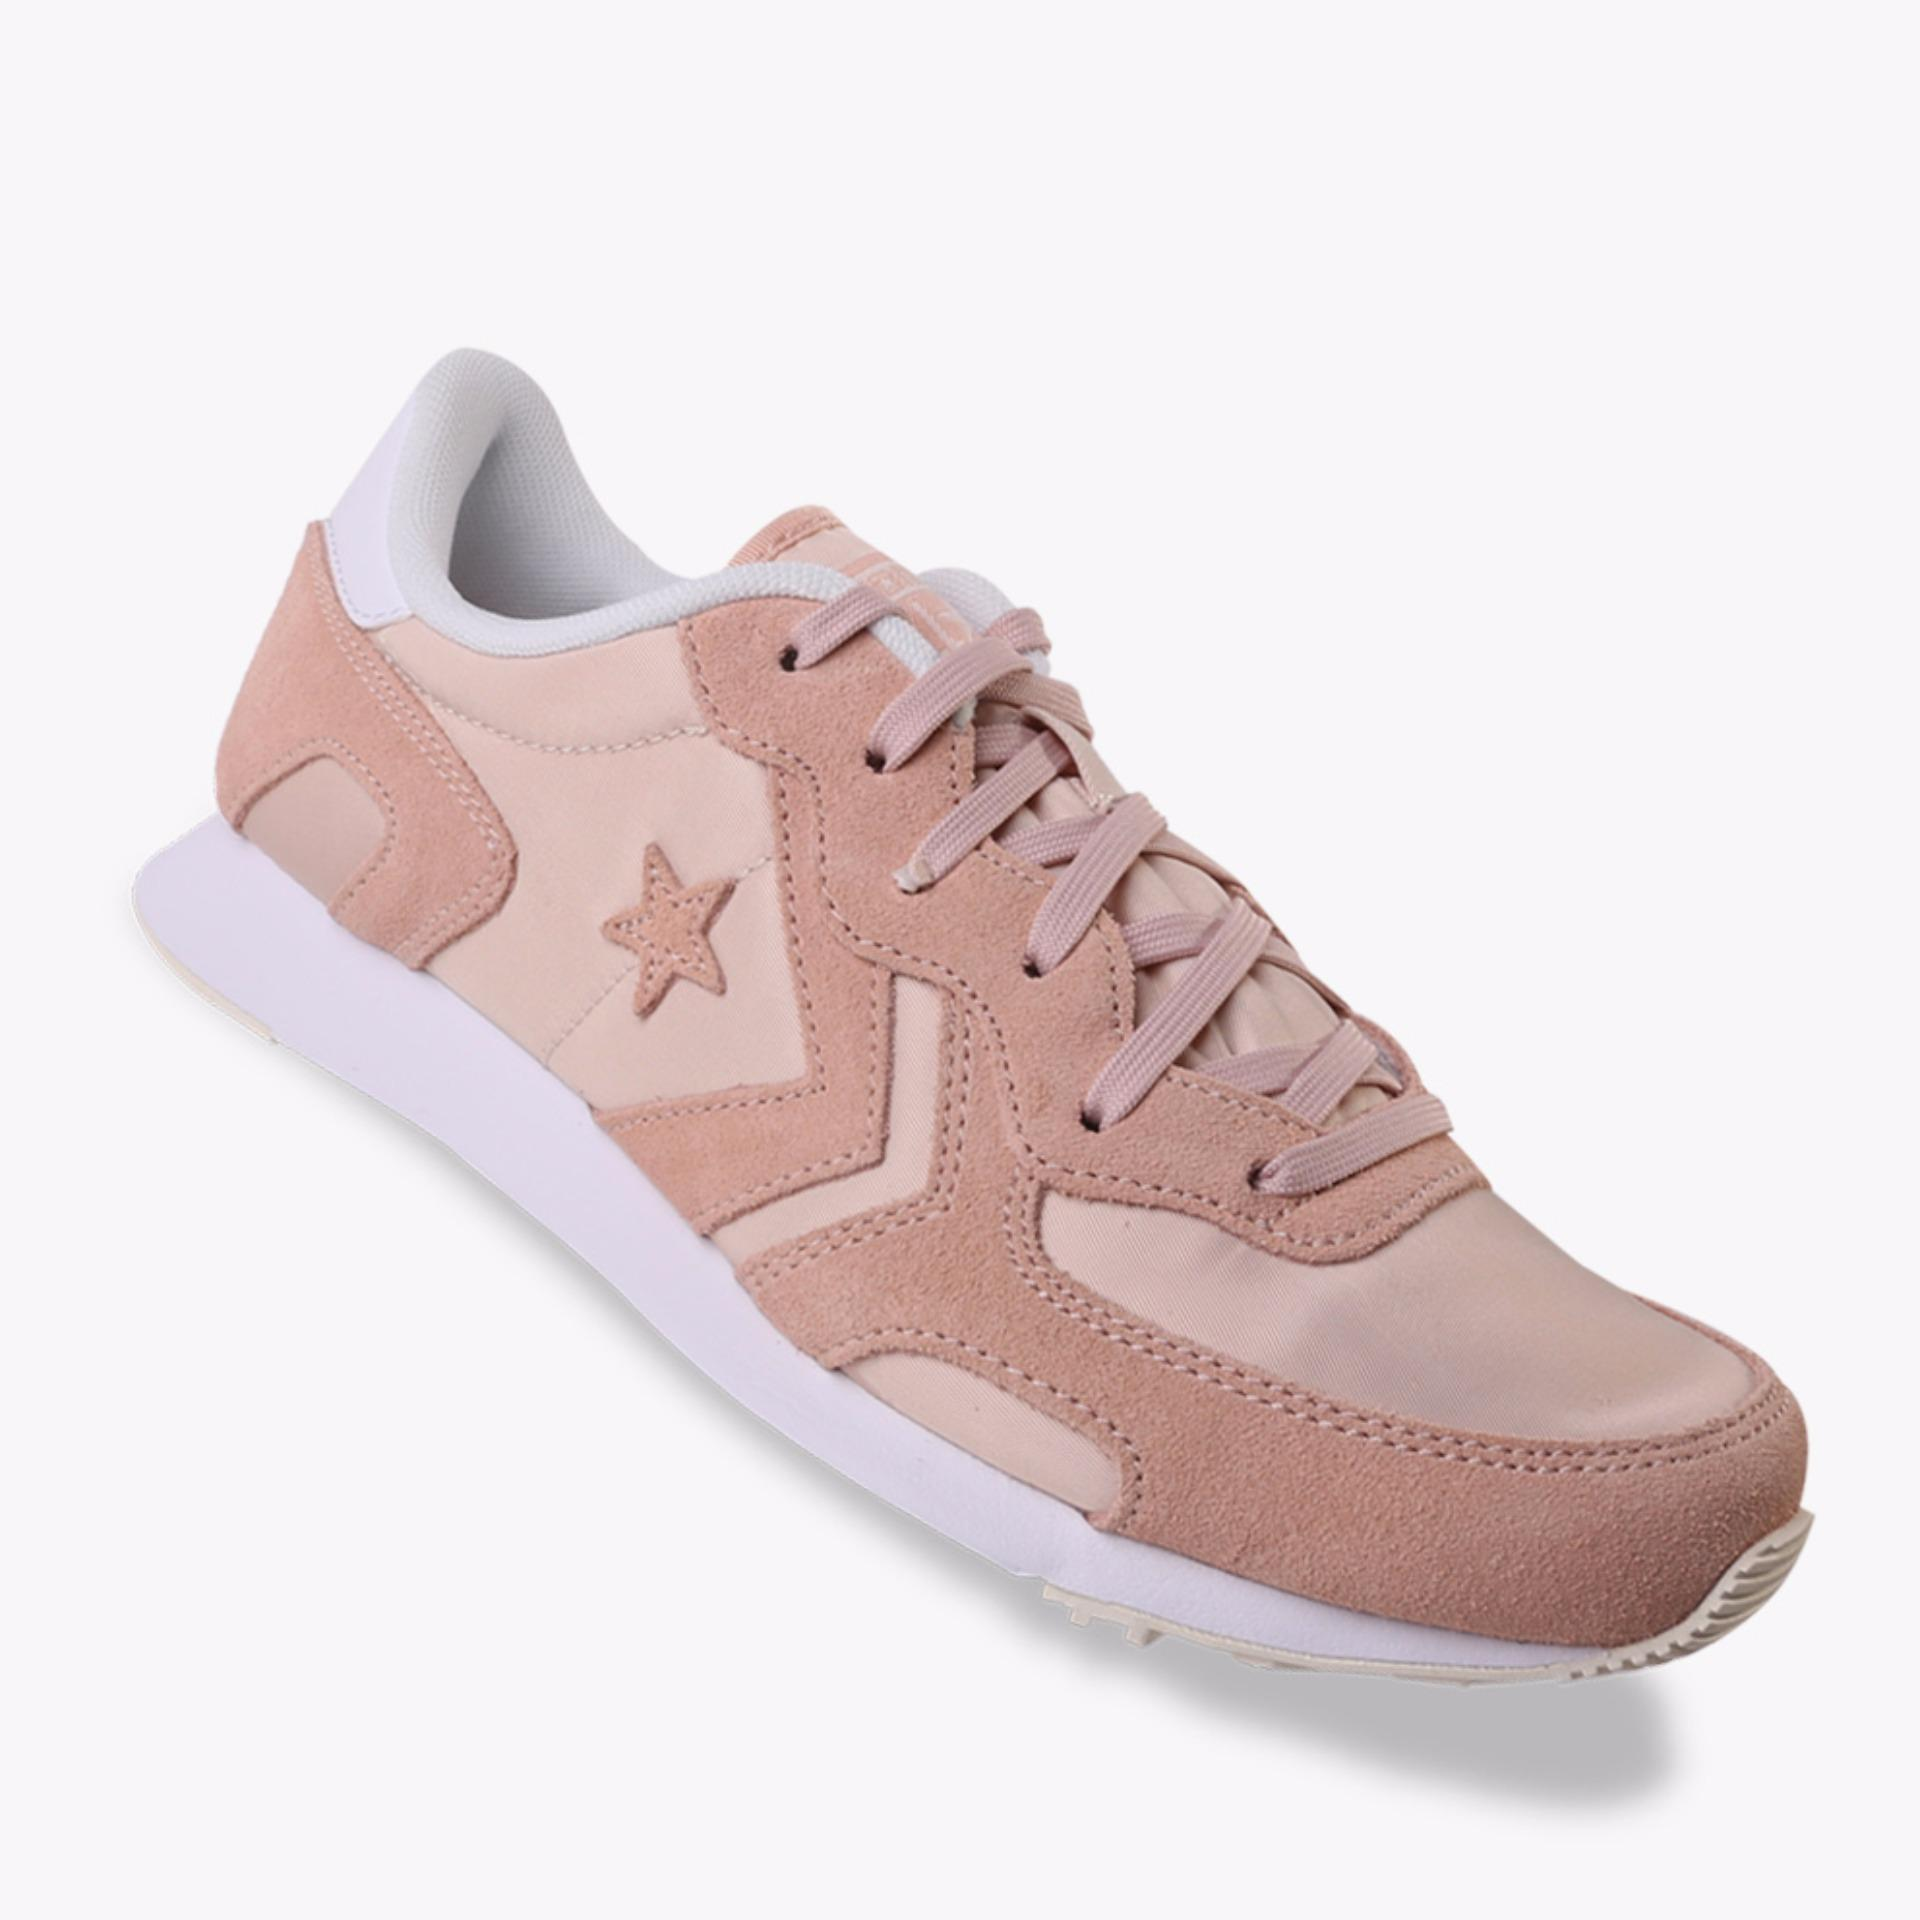 Toko Converse 84 Thunderbolt Ox Women S Sneakers Shoes Pink Online Indonesia